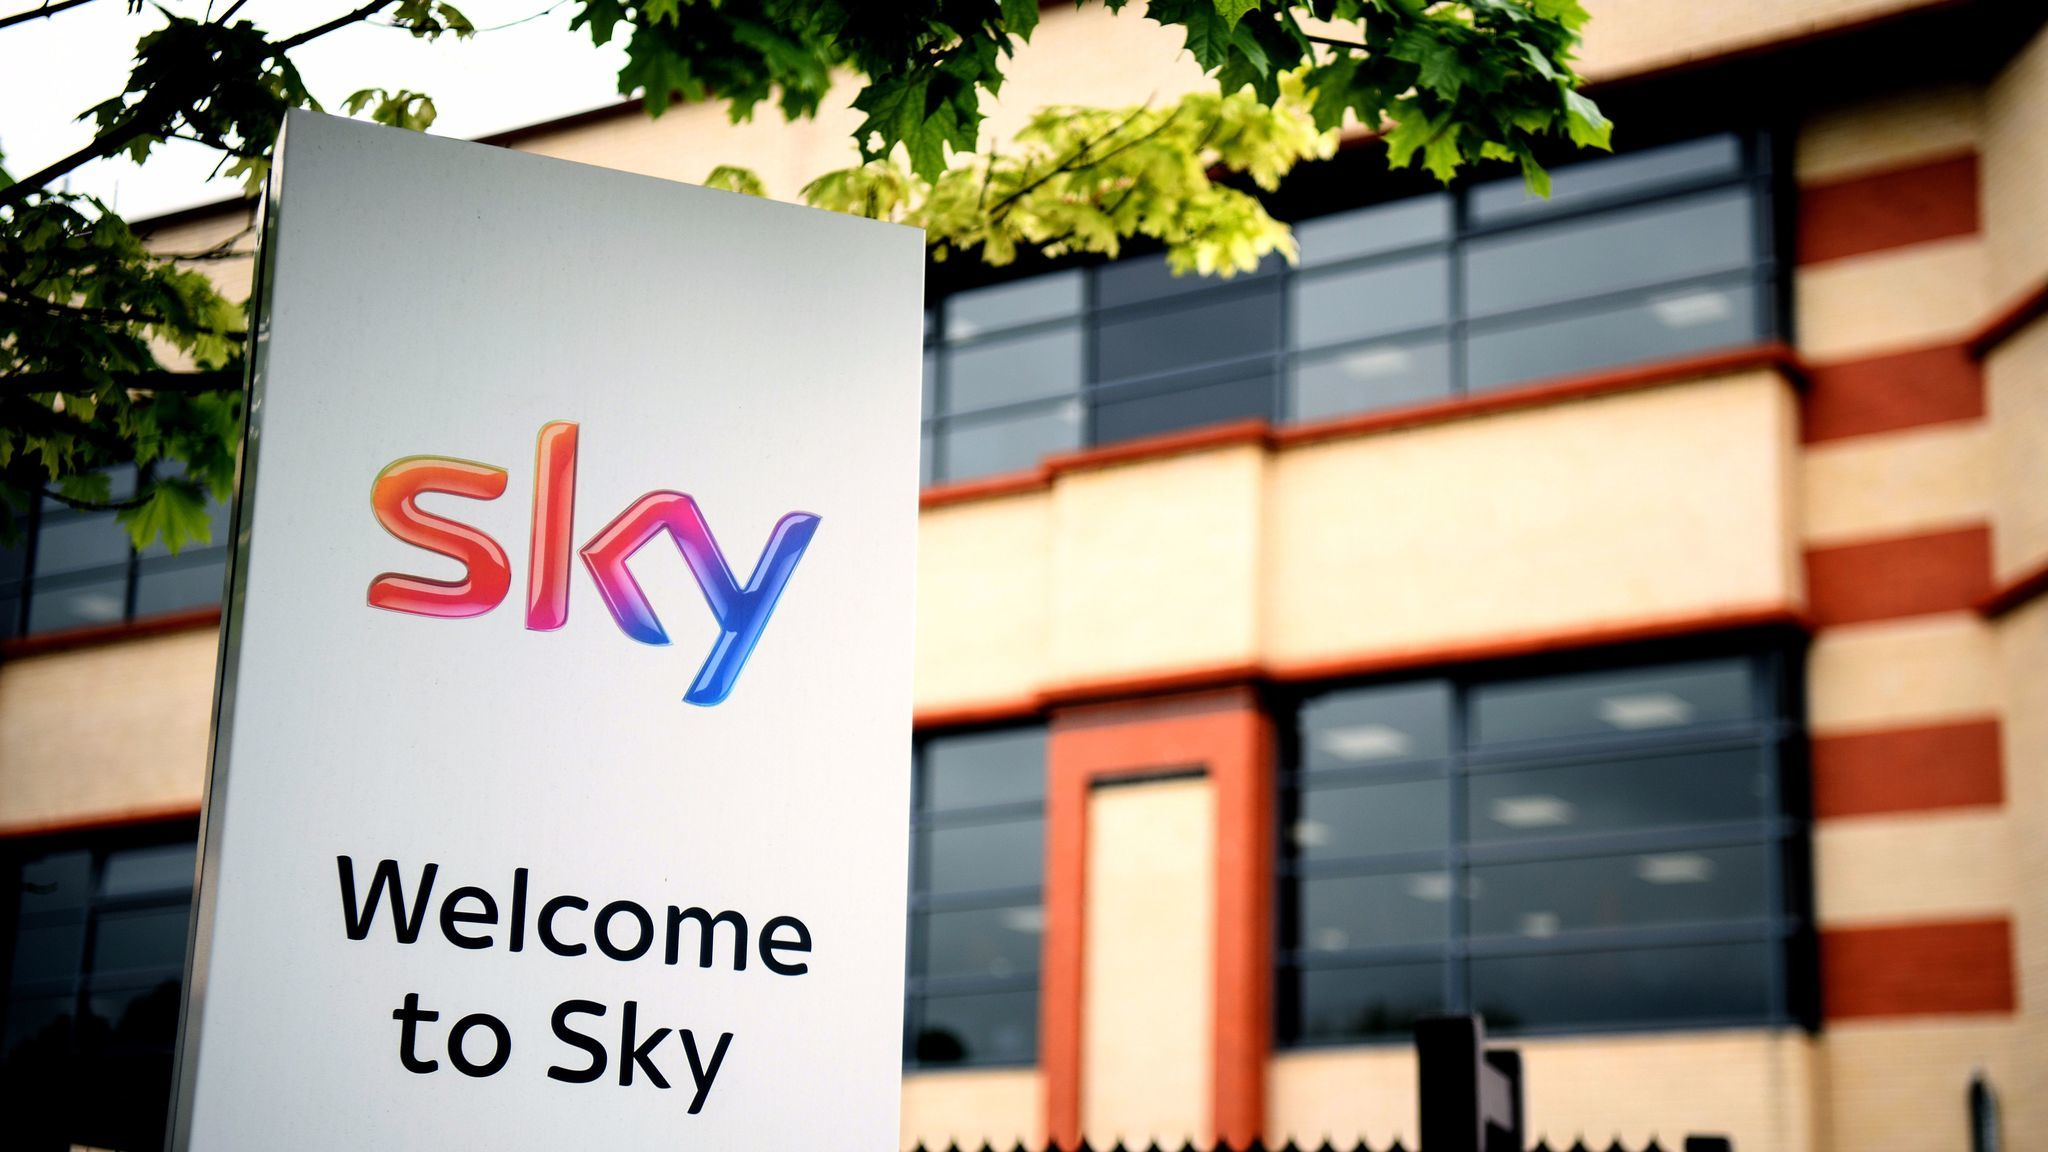 OFCOM Considers The Multi-billion Pound Takeover Of SKY By 21st Century Fox